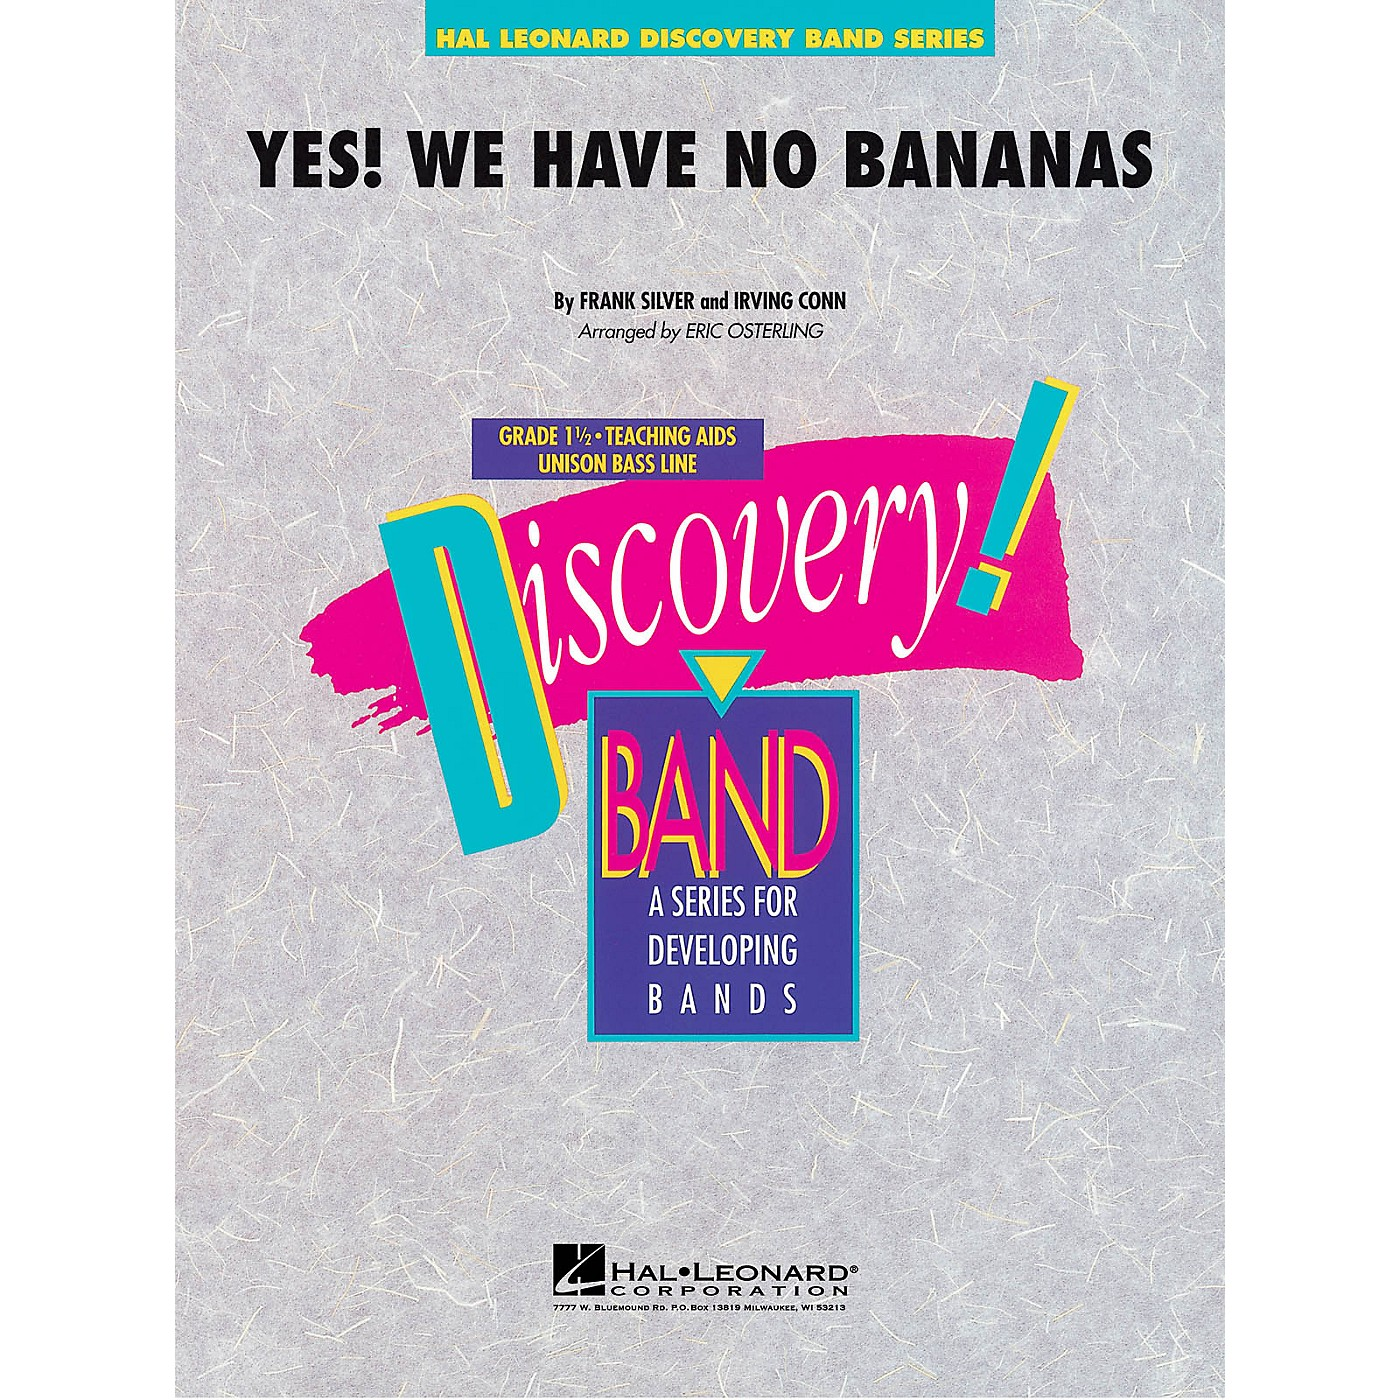 Hal Leonard Yes! We Have No Bananas Concert Band Level 1.5 Arranged by Eric Osterling thumbnail